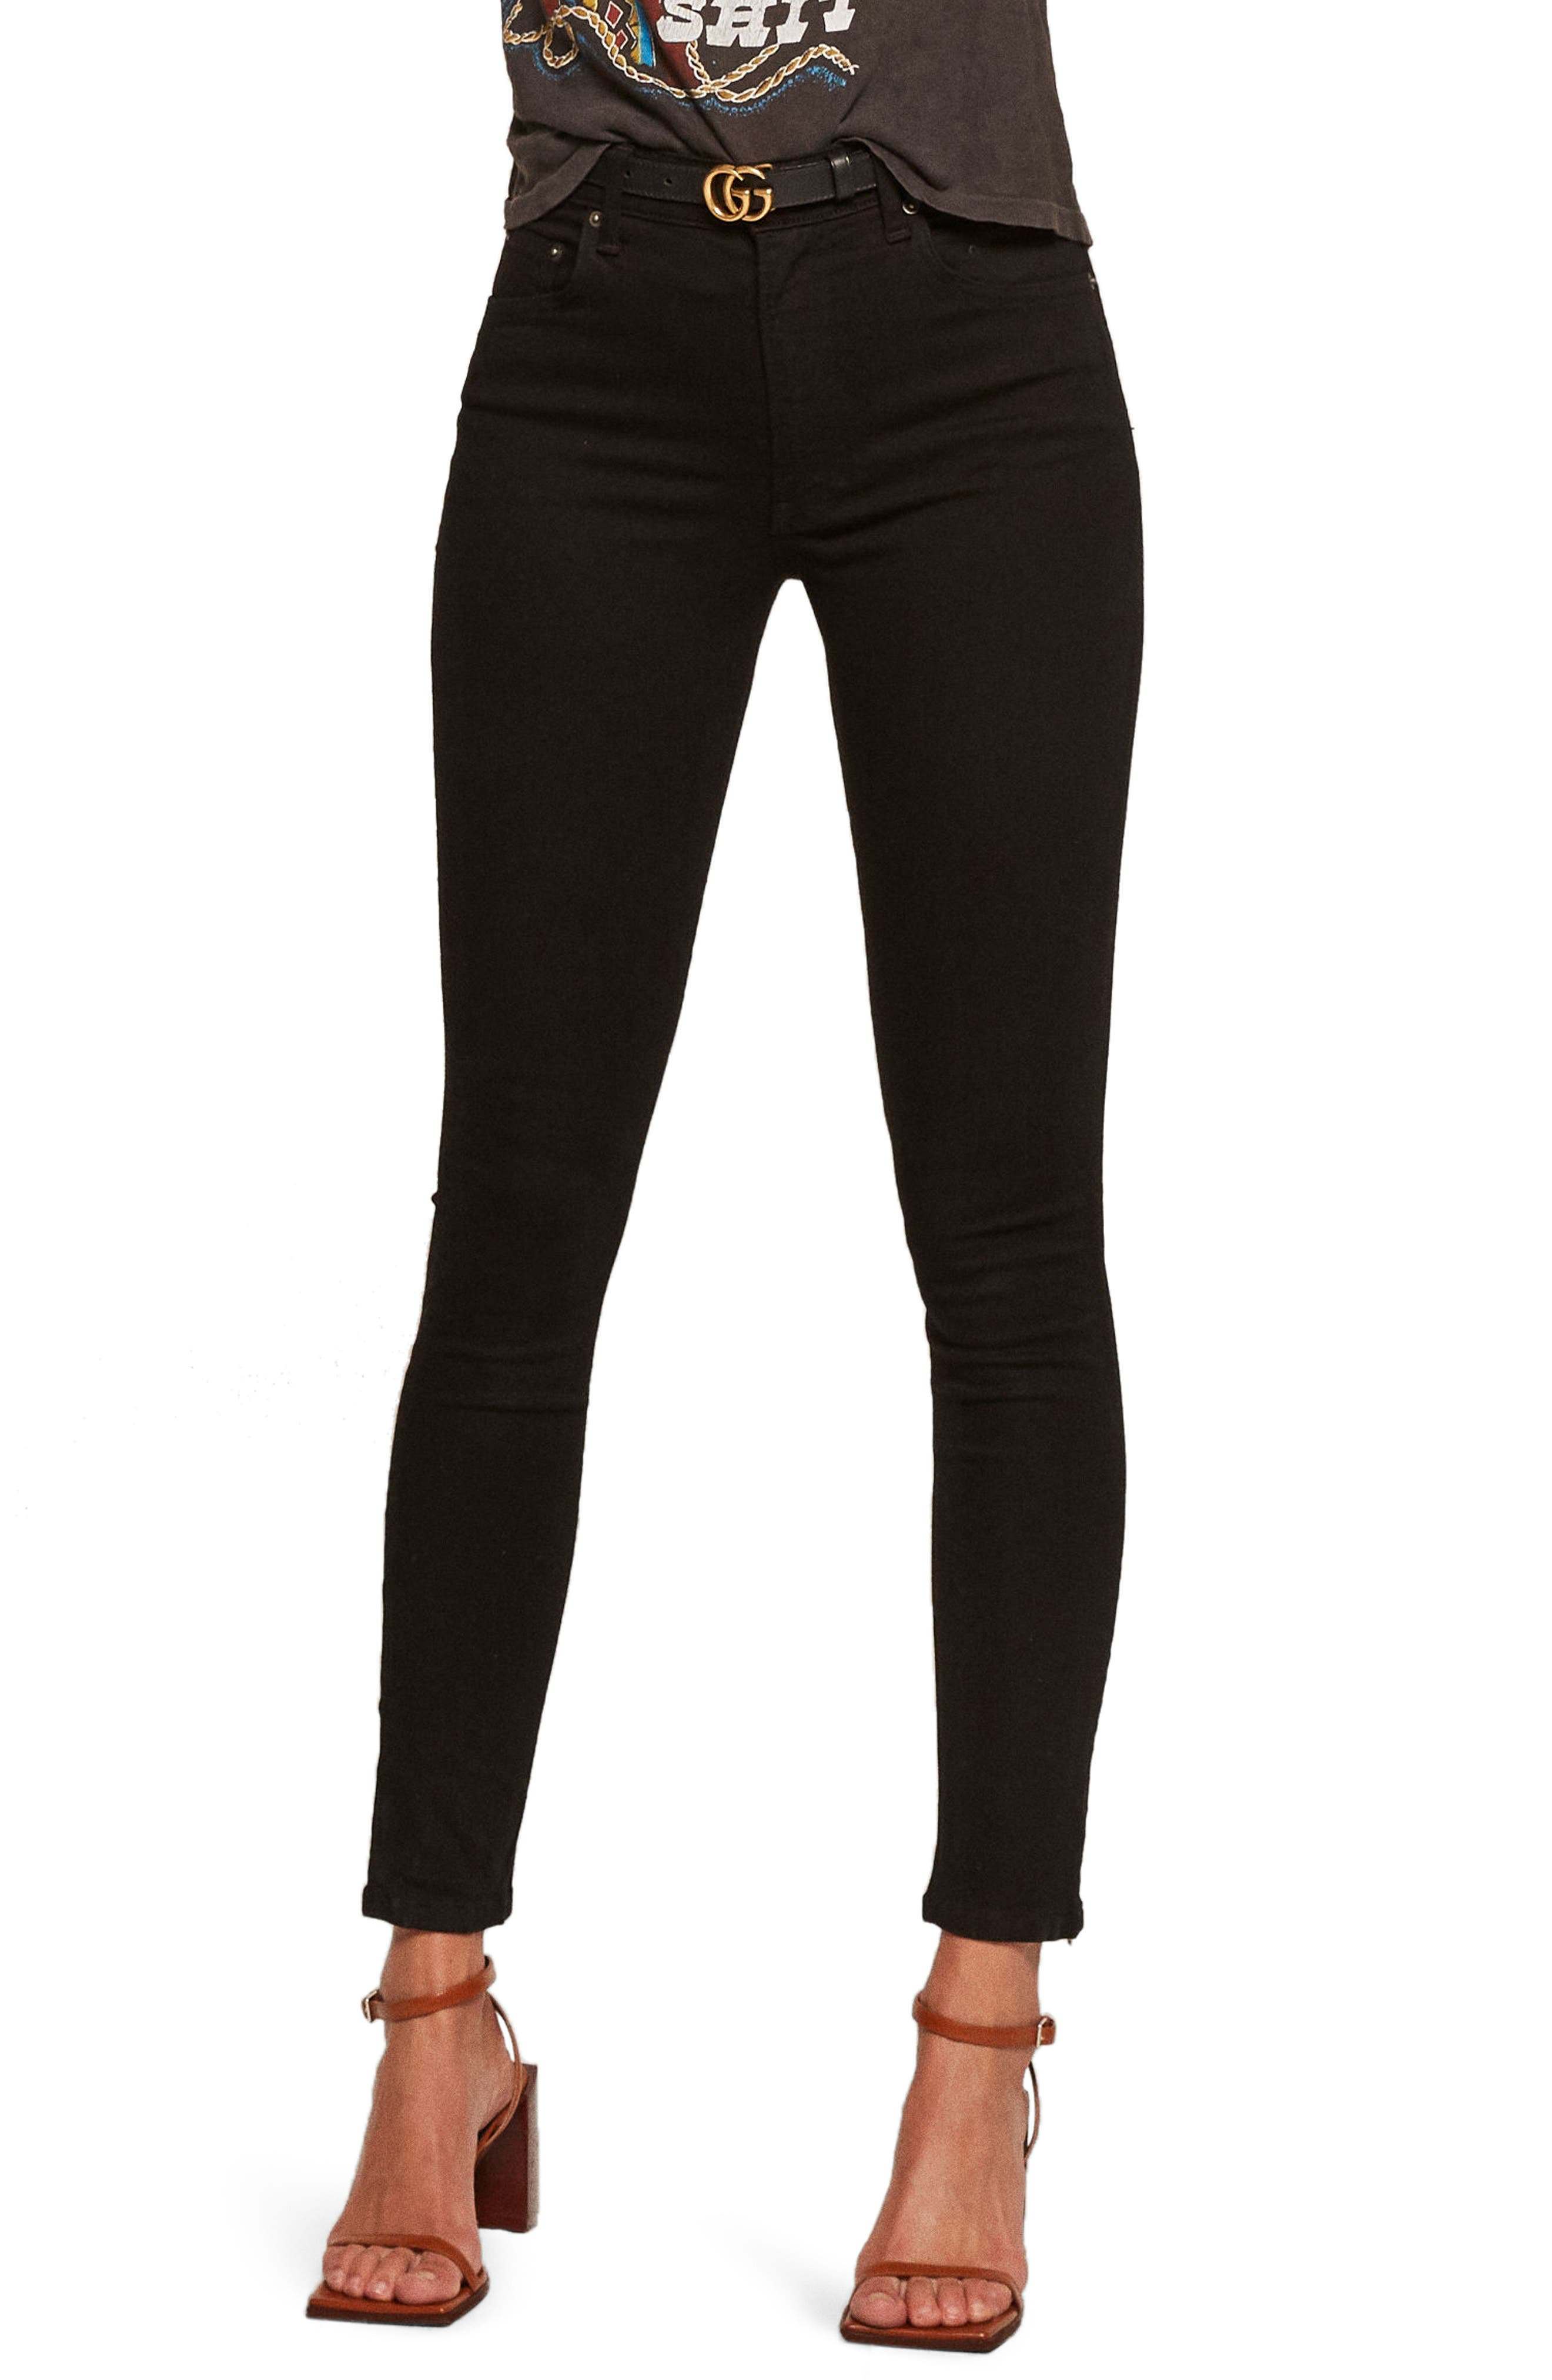 REFORMATION,                             High & Skinny Jeans,                             Main thumbnail 1, color,                             BLACK